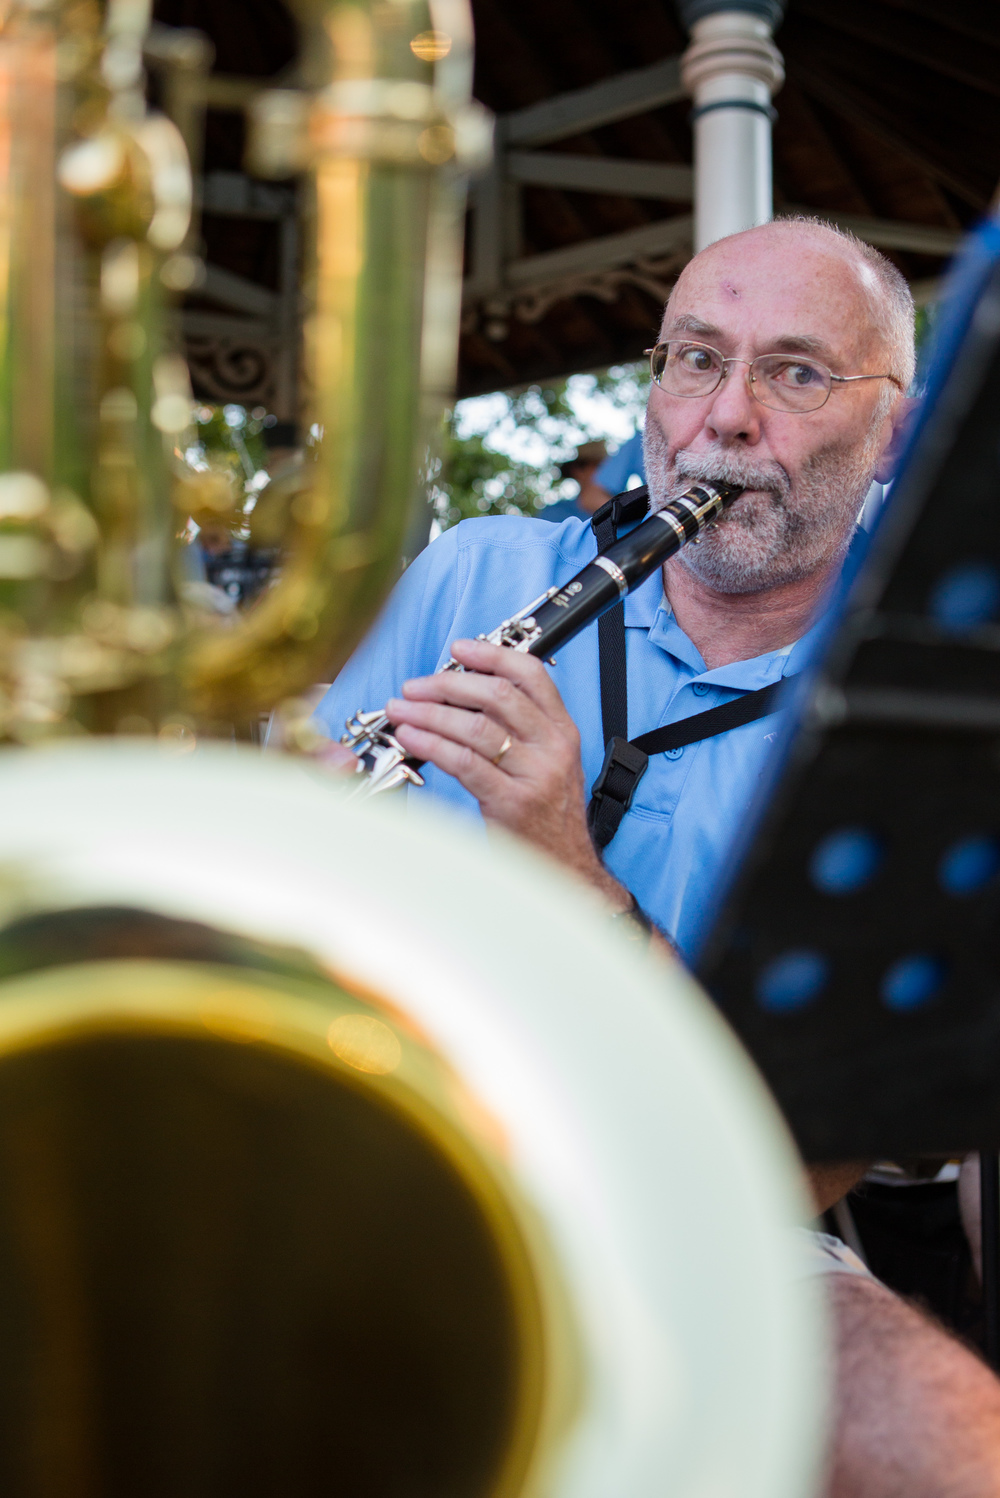 Clarinet and baritone saxophone player Michael Dooris performs with The Second Winds at the gazebo in Talleyrand Park in Bellefonte on Sunday, Aug. 7, 2016.